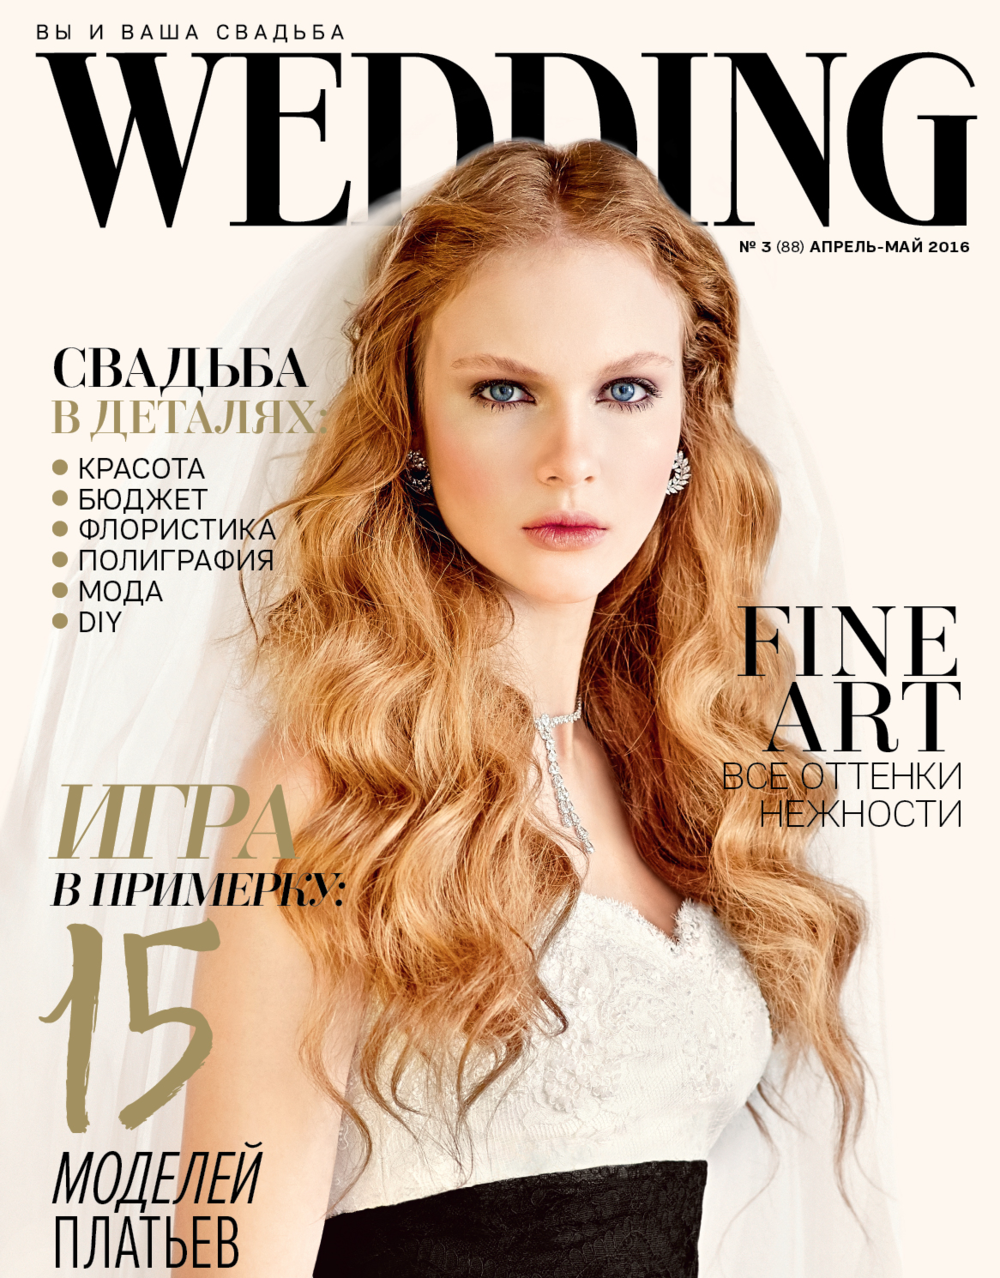 Wedding №3(88) Апрель-май 2016 http://www.wedding-magazine.ru